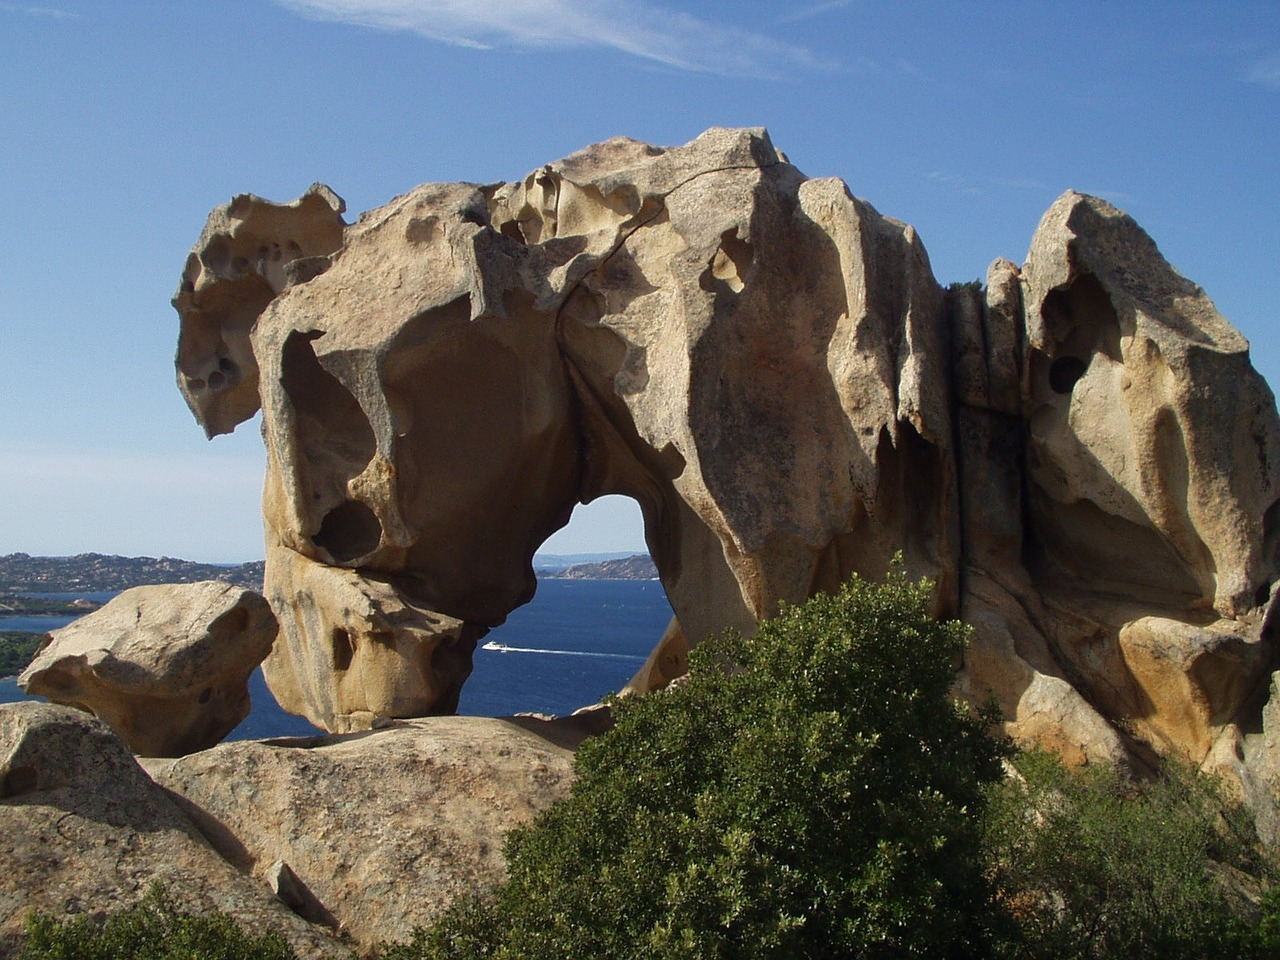 sardinia,capo d'orso,bear,granite,cliff,rock,free pictures, free photos, free images, royalty free, free illustrations, public domain